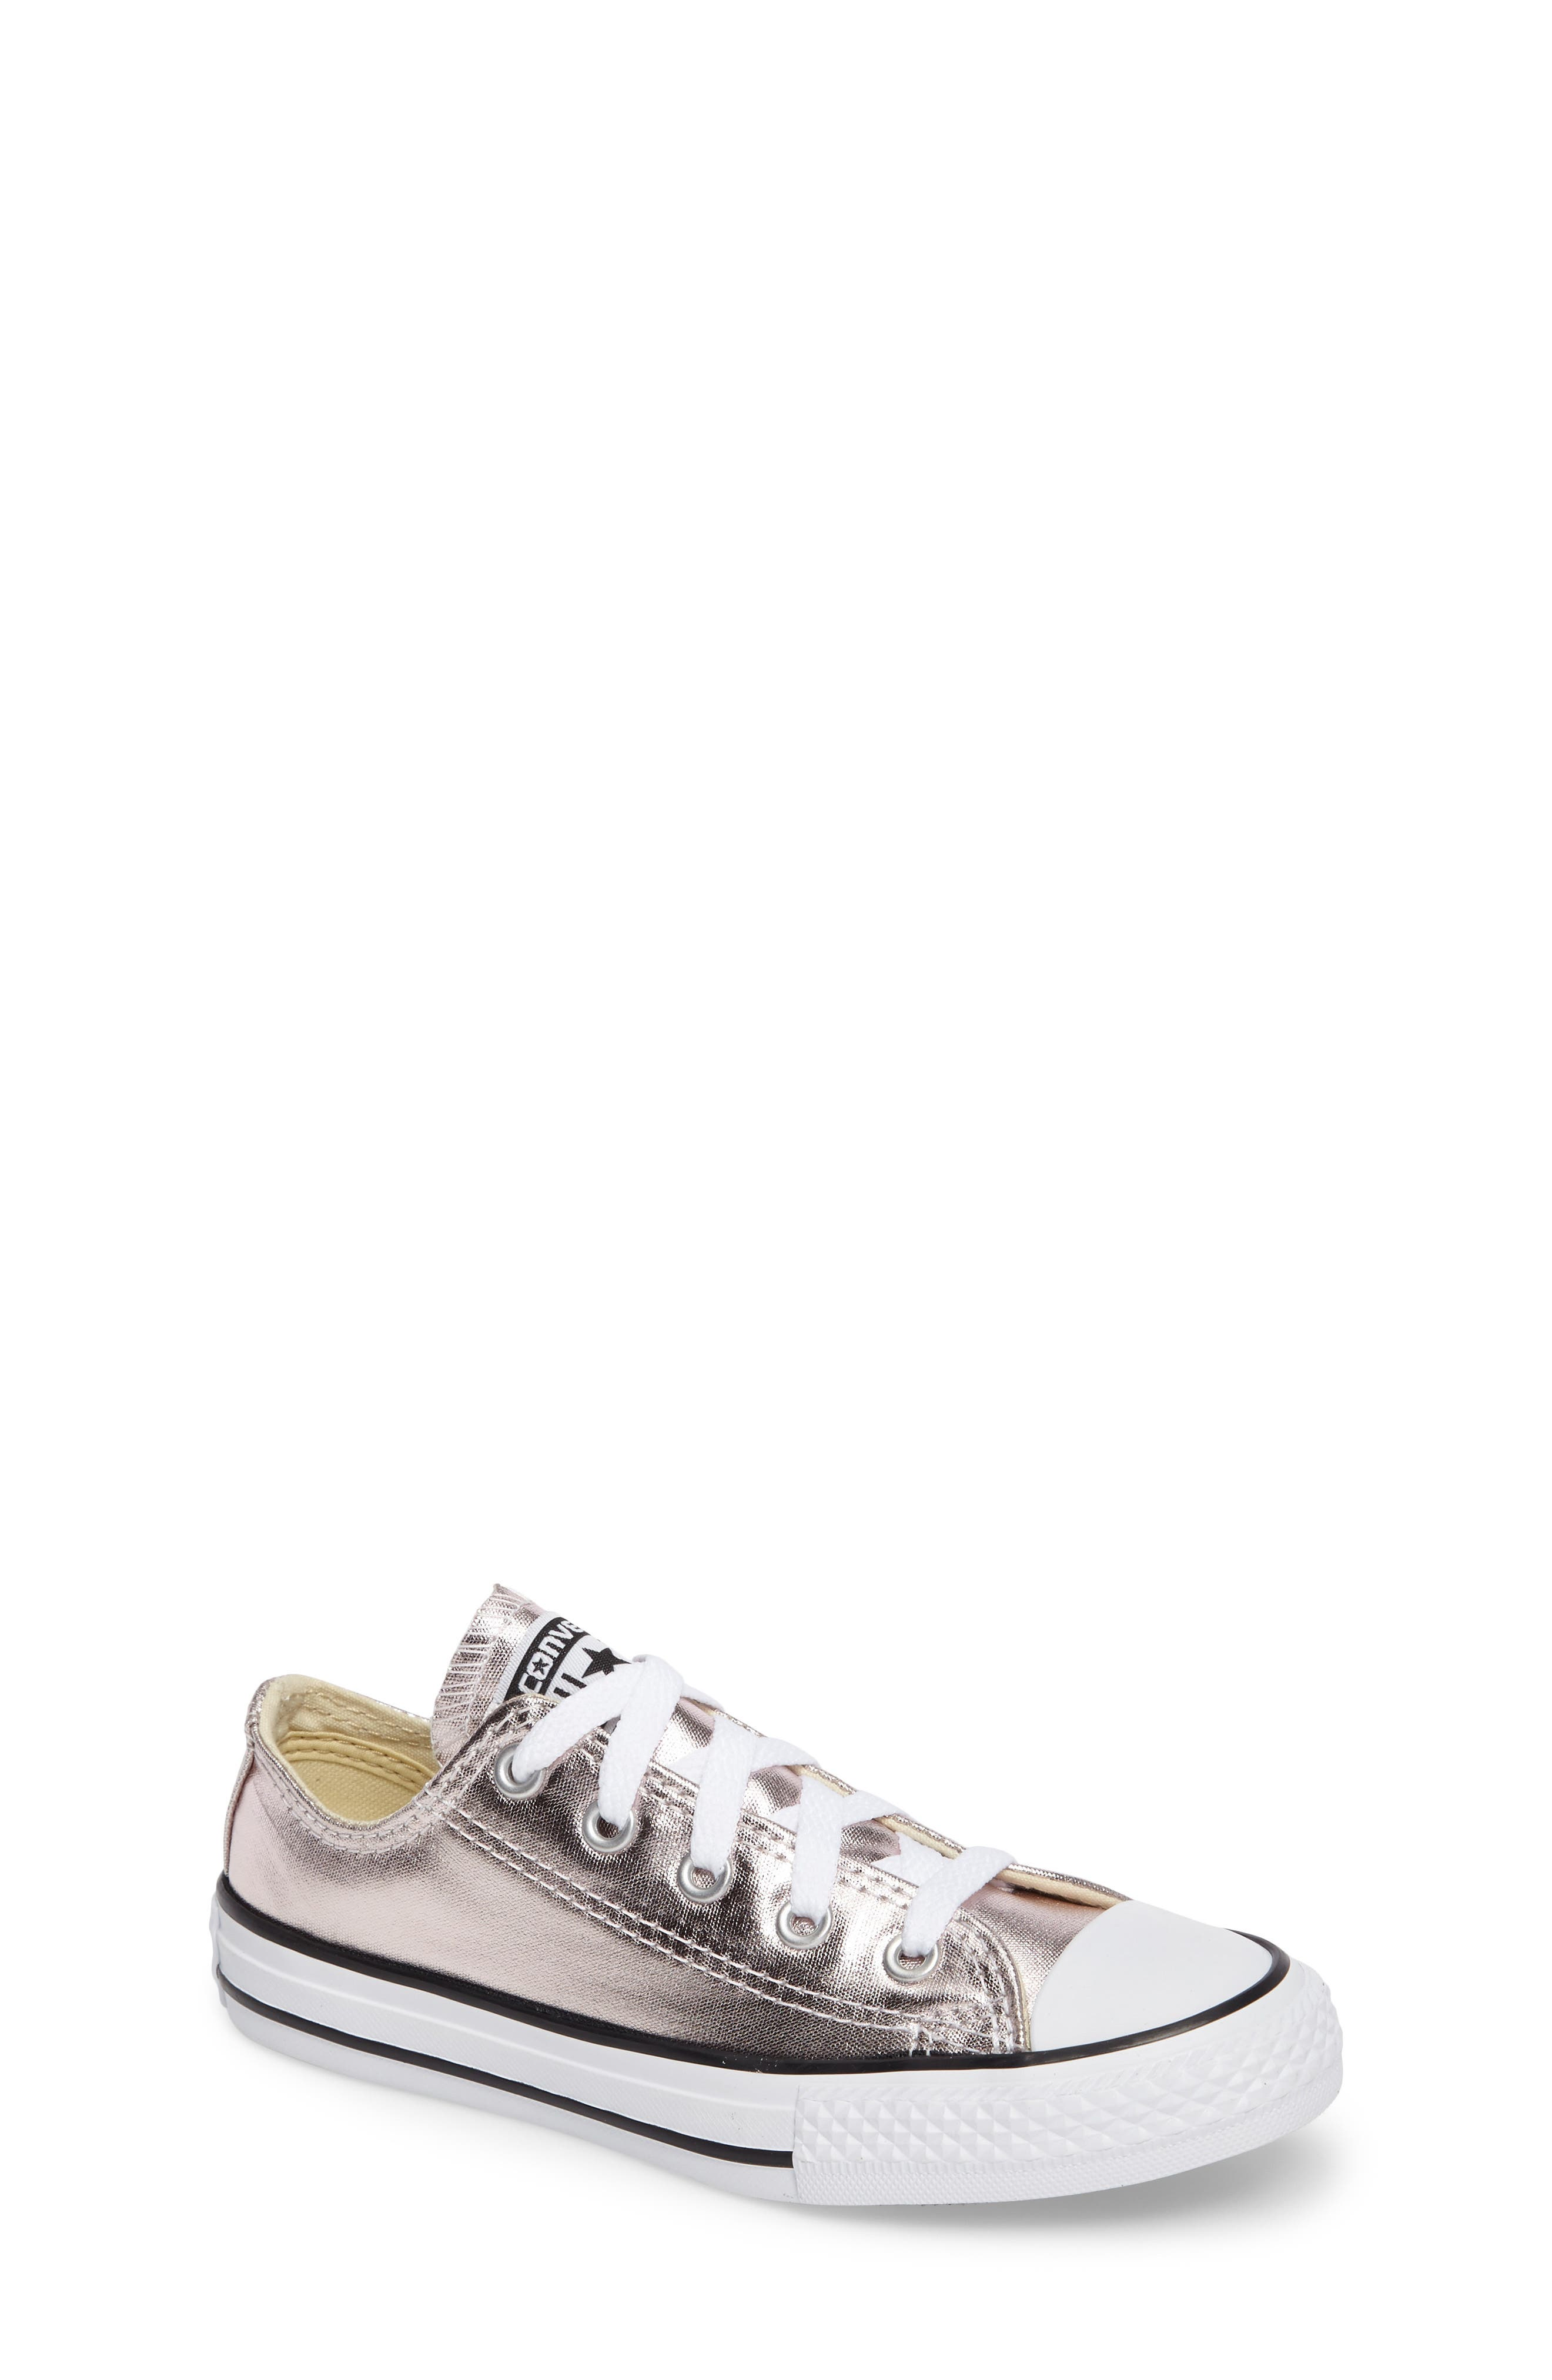 Chuck Taylor<sup>®</sup> All Star<sup>®</sup> Ox Metallic Low Top Sneaker,                         Main,                         color, 220